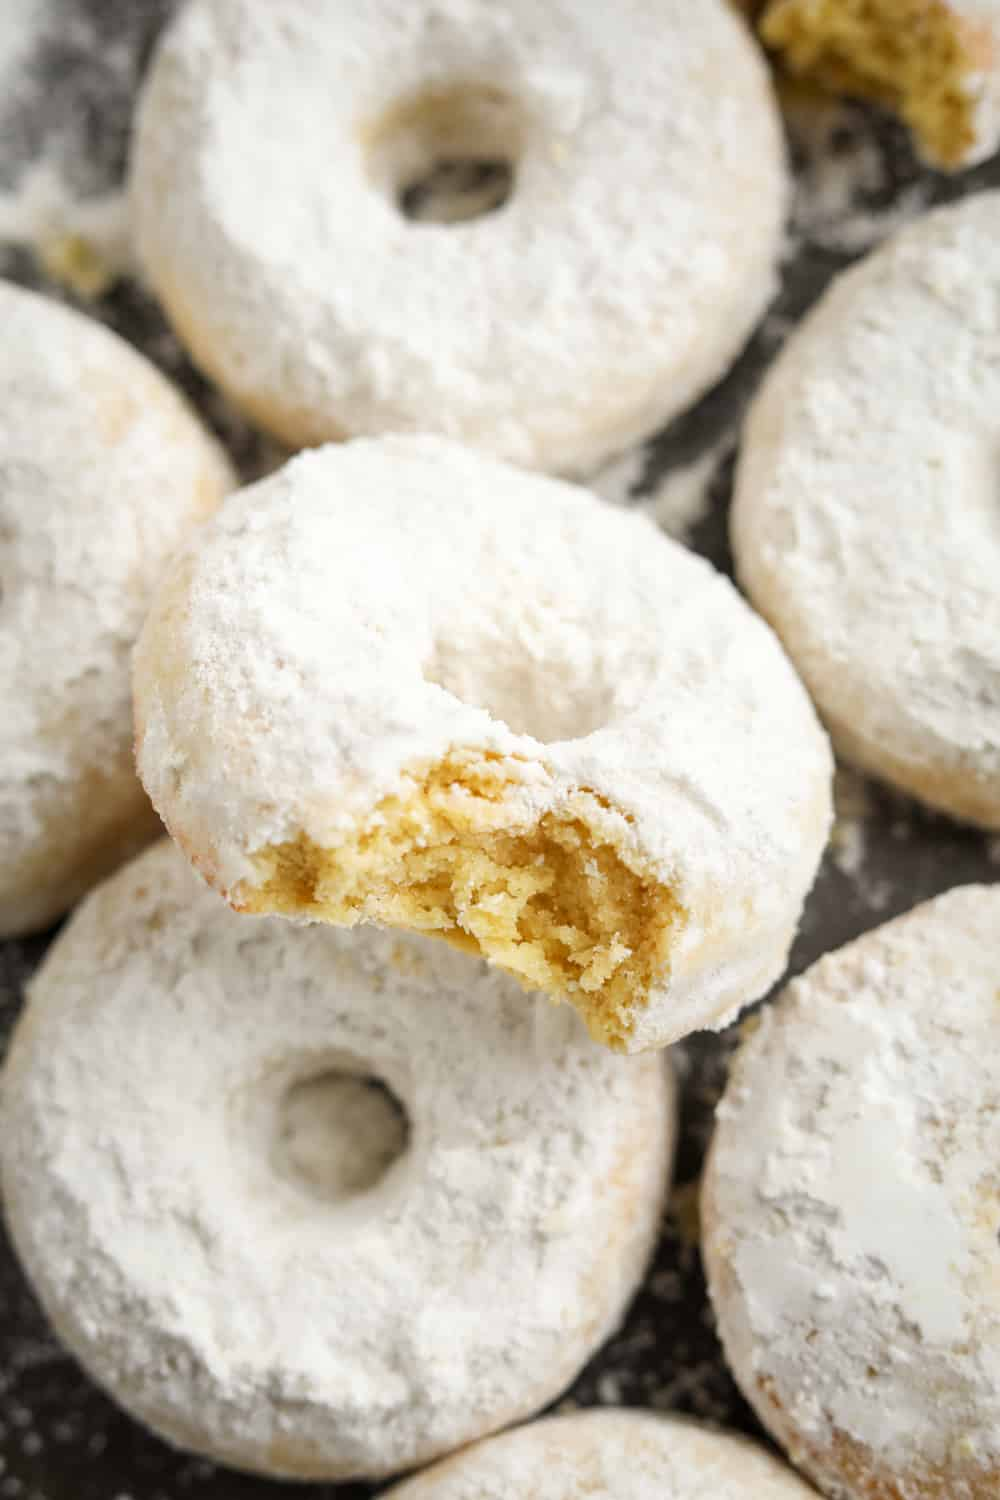 A powdered sugar donut with a bite taken out of it. The donut is stacked on top of other donuts.